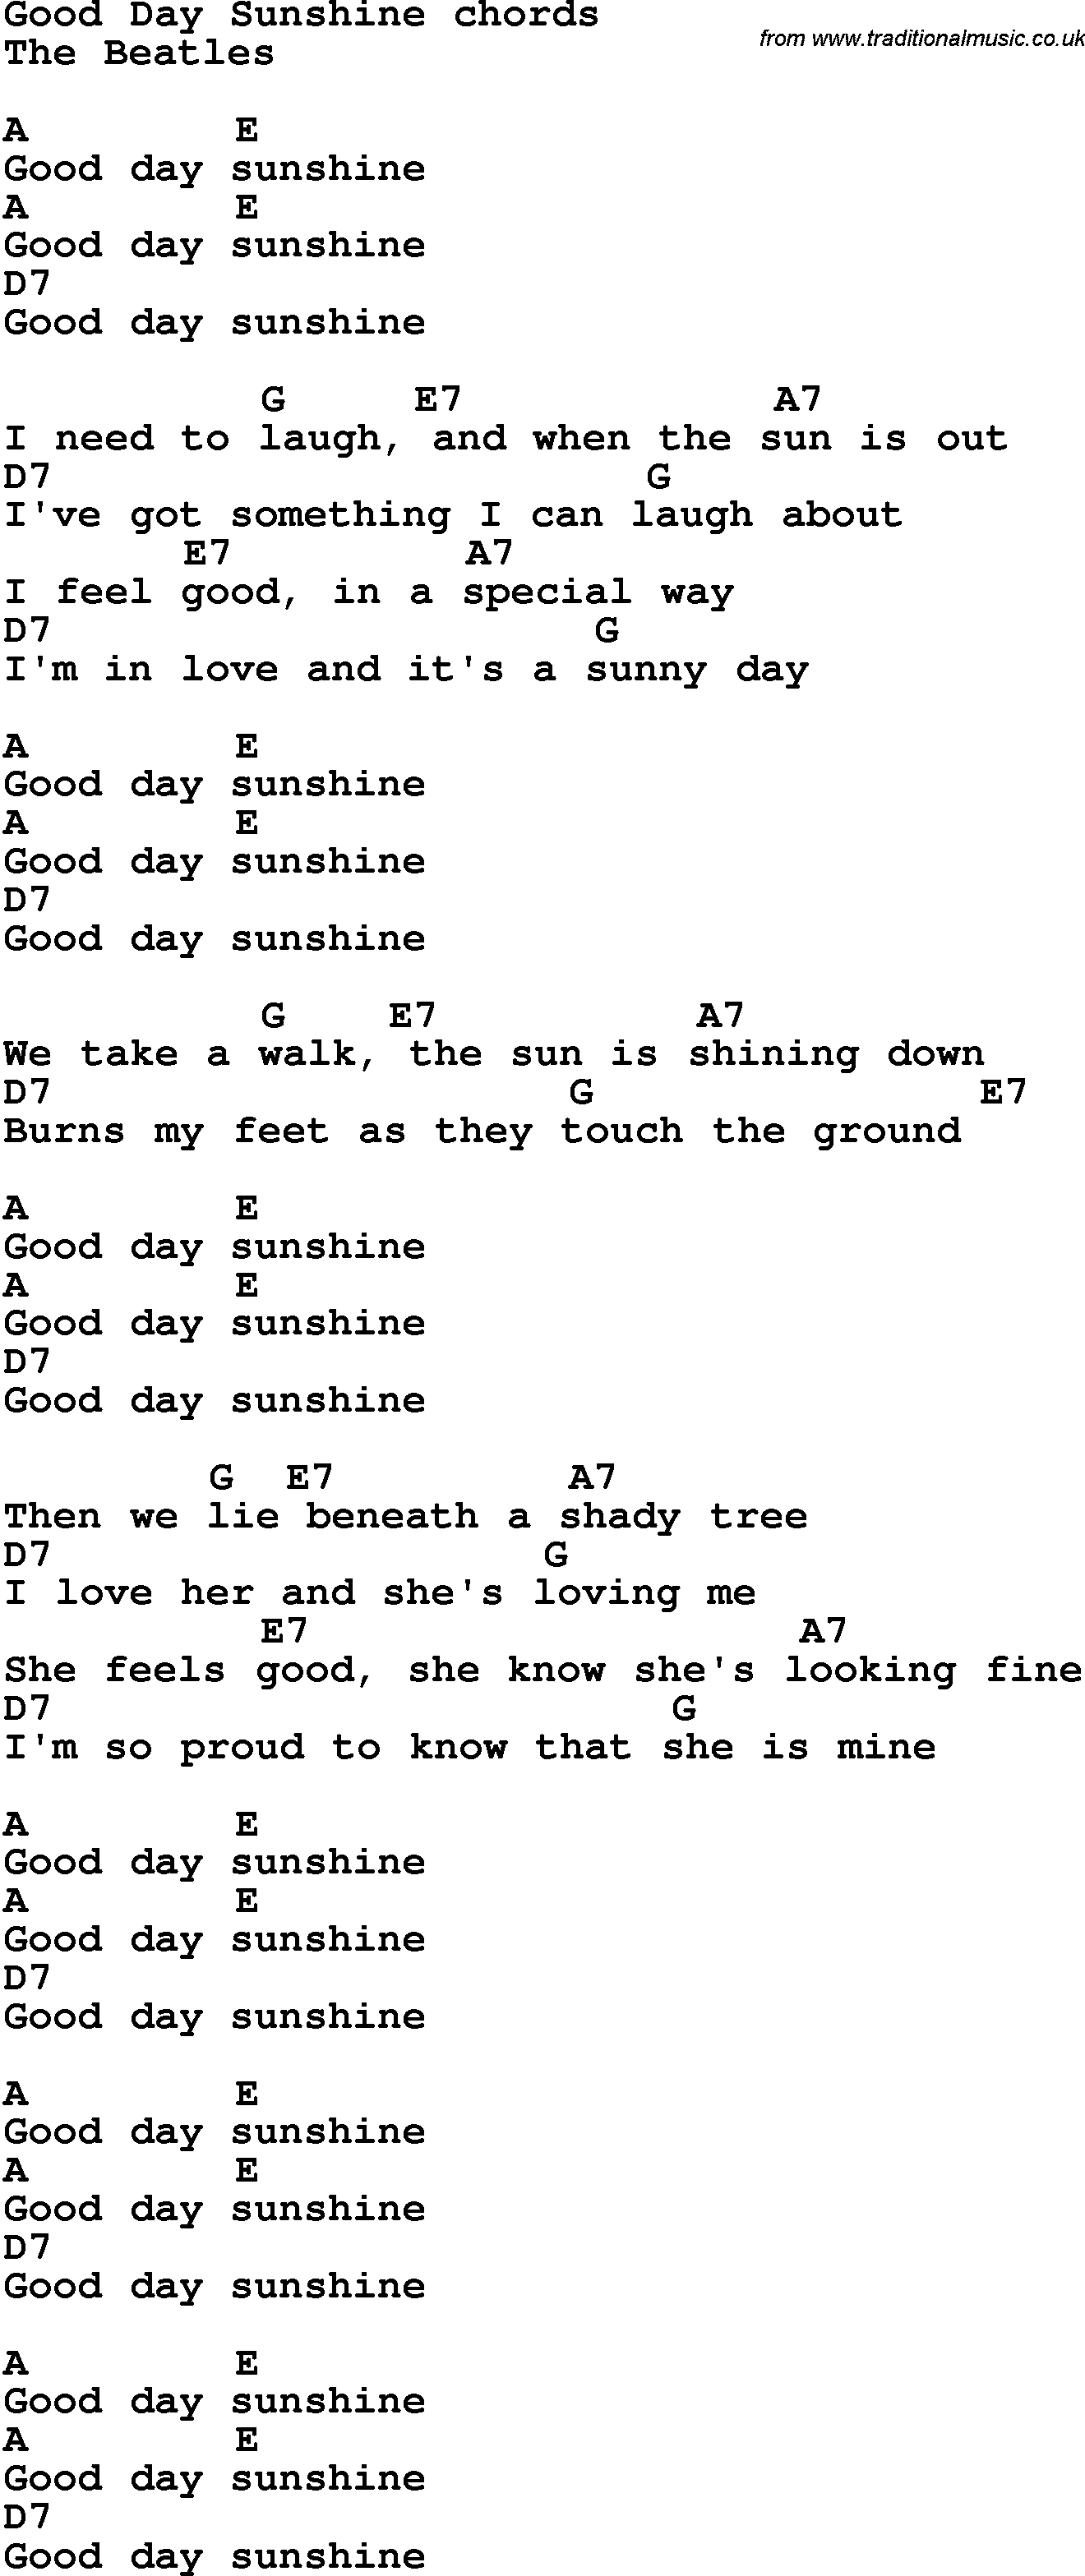 Song Lyrics With Guitar Chords For Good Day Sunshine The Beatles